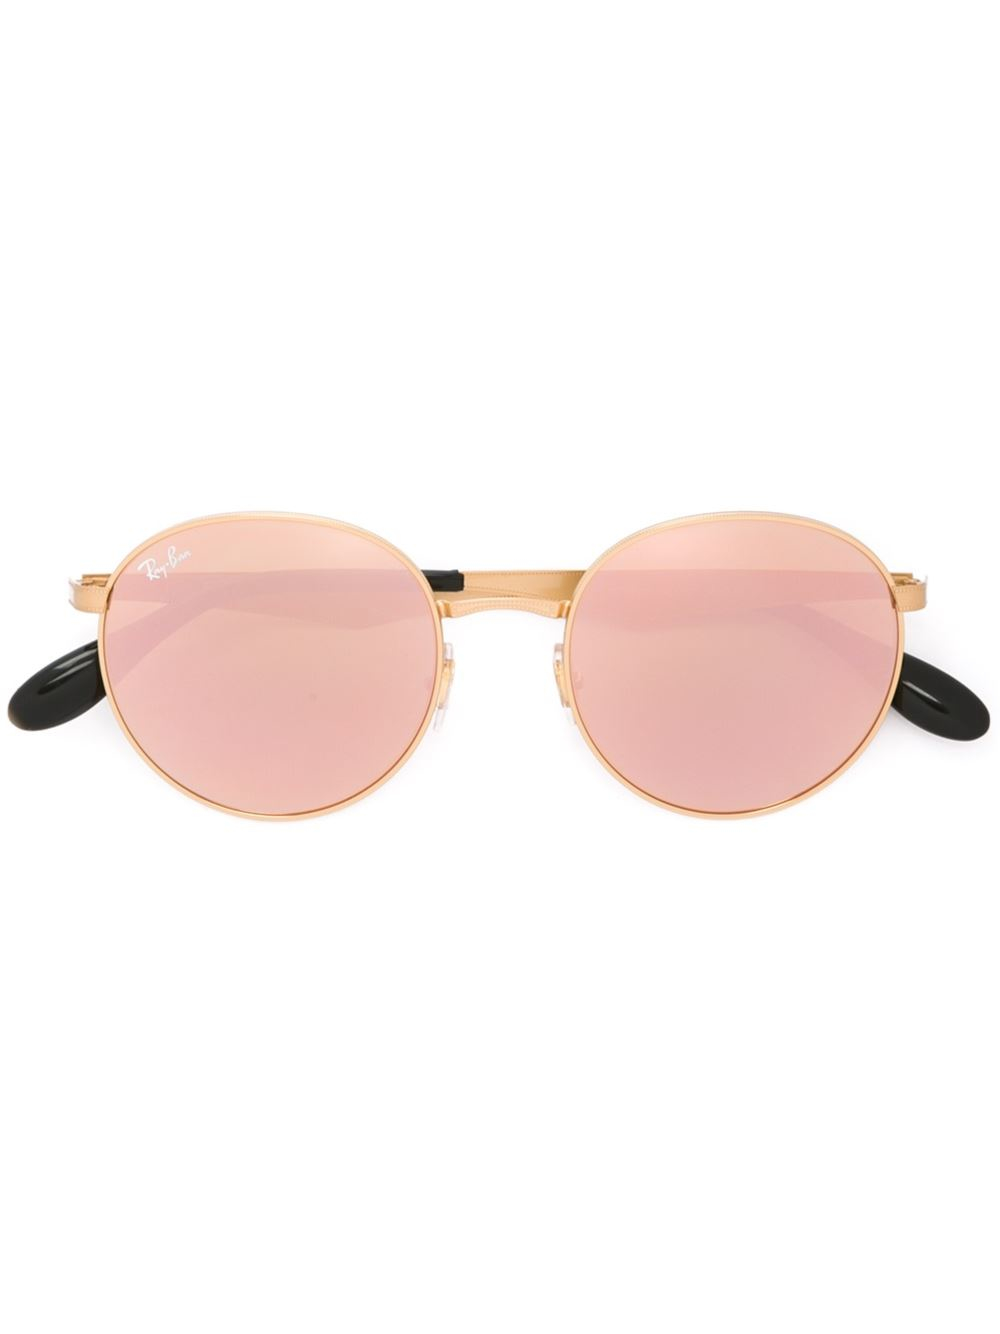 Ray Ban Round Frame Sunglasses : Ray-ban Round Frame Sunglasses in Metallic Lyst